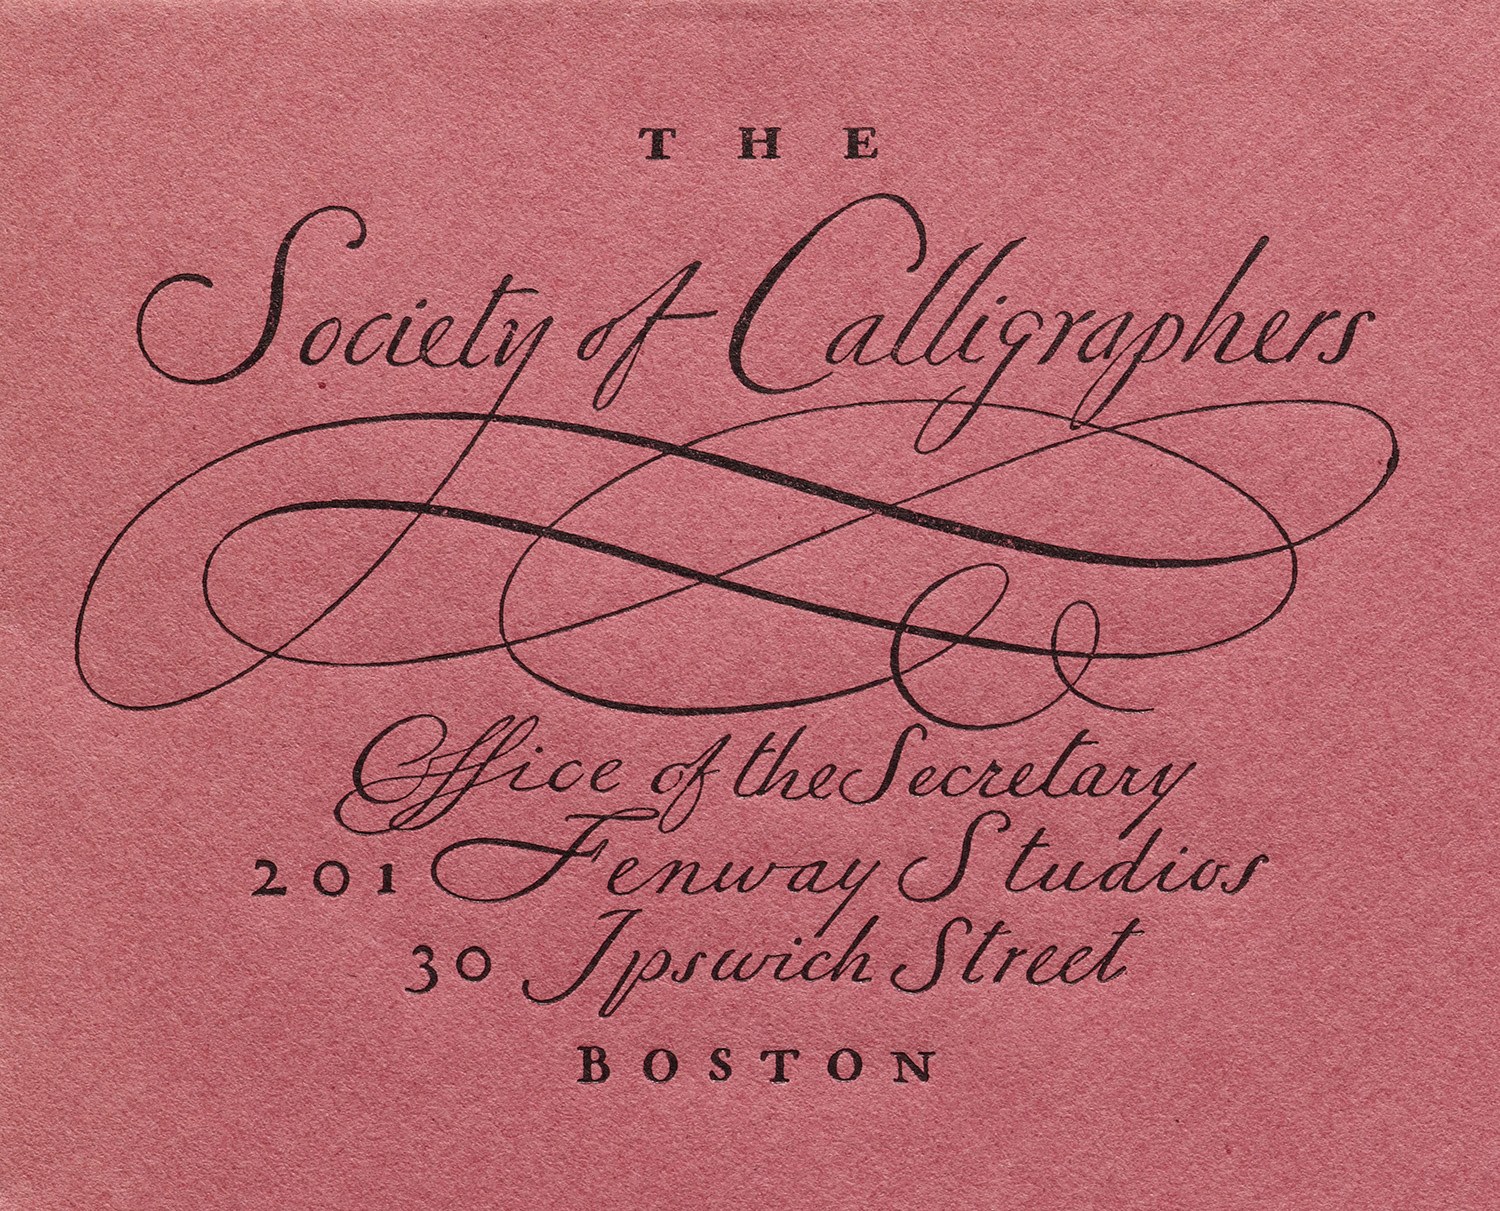 Detail of stationery for the Society of Calligraphers